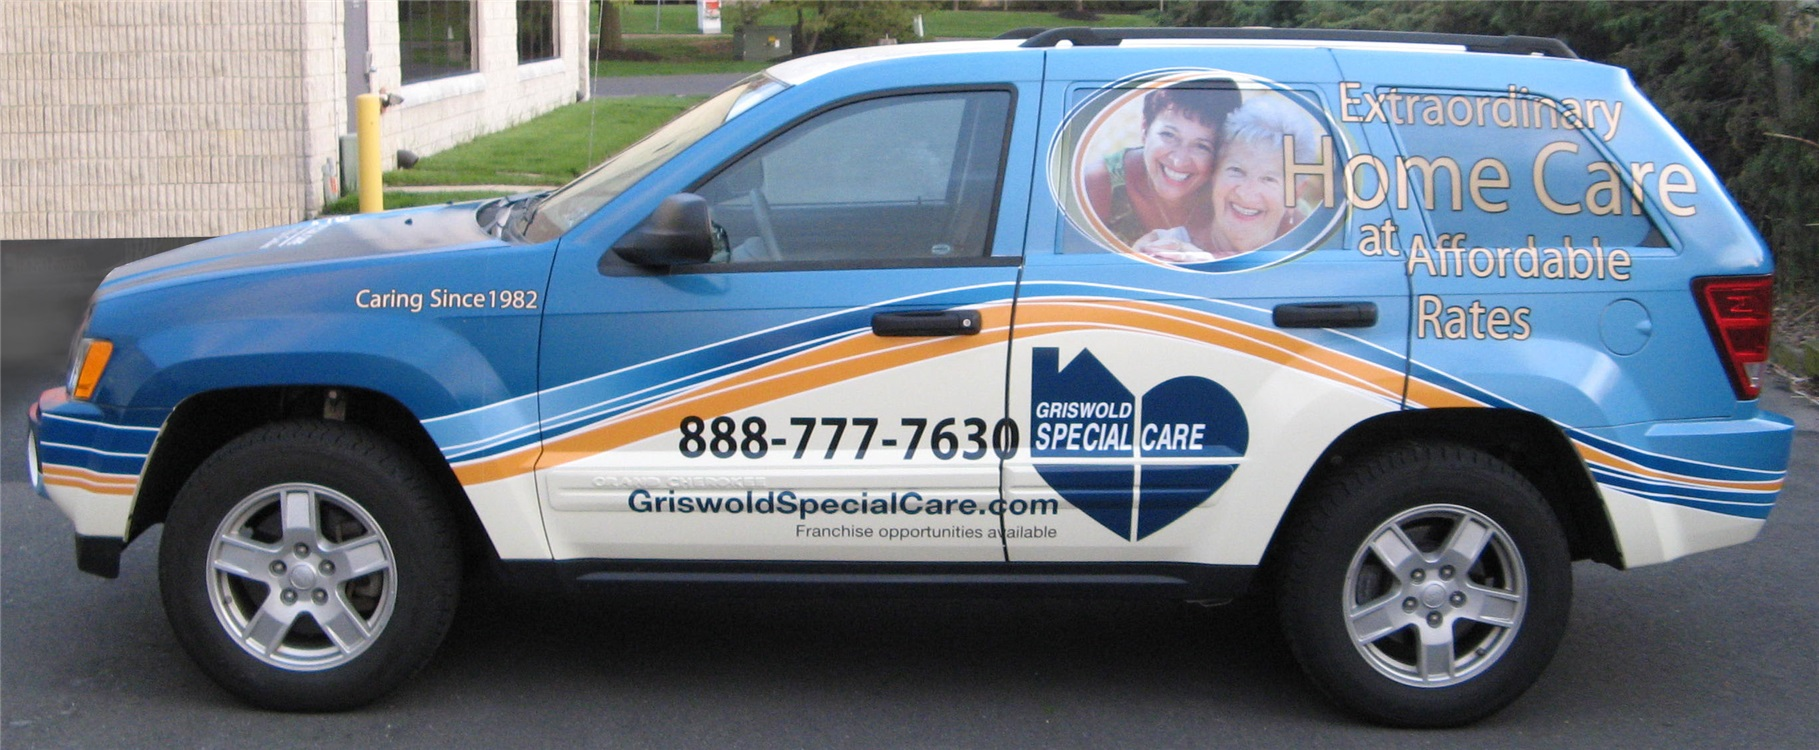 SUV graphics for home health care service